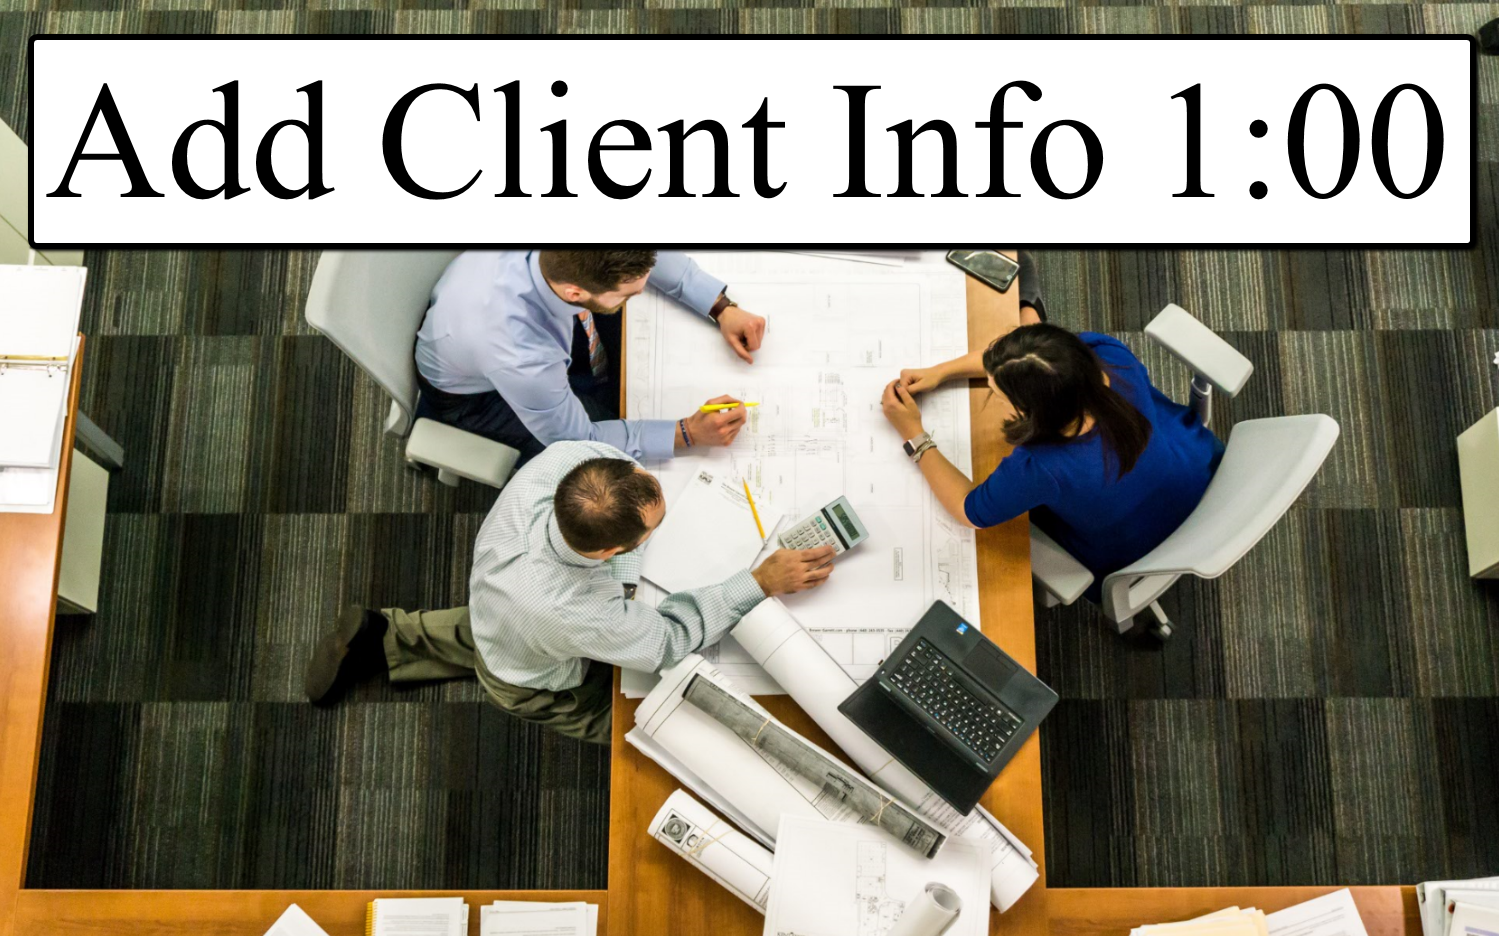 Adding_Client_Info_001.png